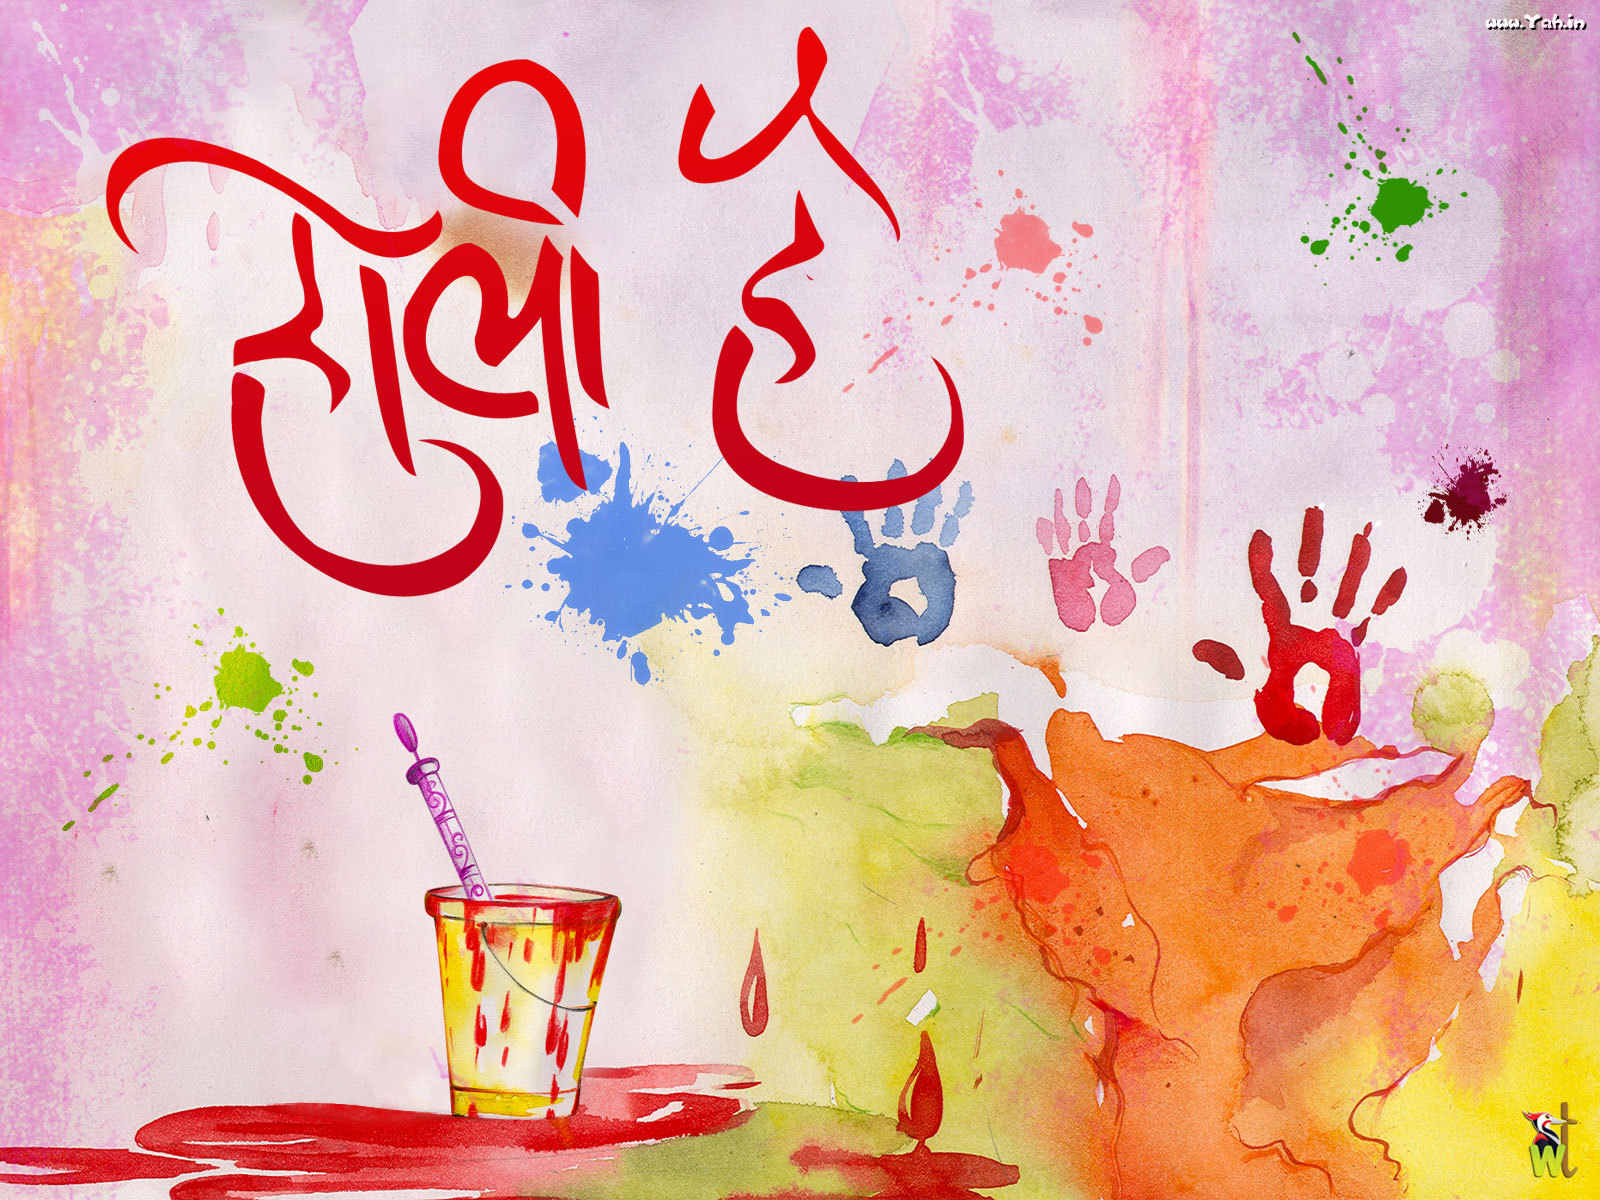 Punjab Trip: Holi Festival 2013 Wallpapers